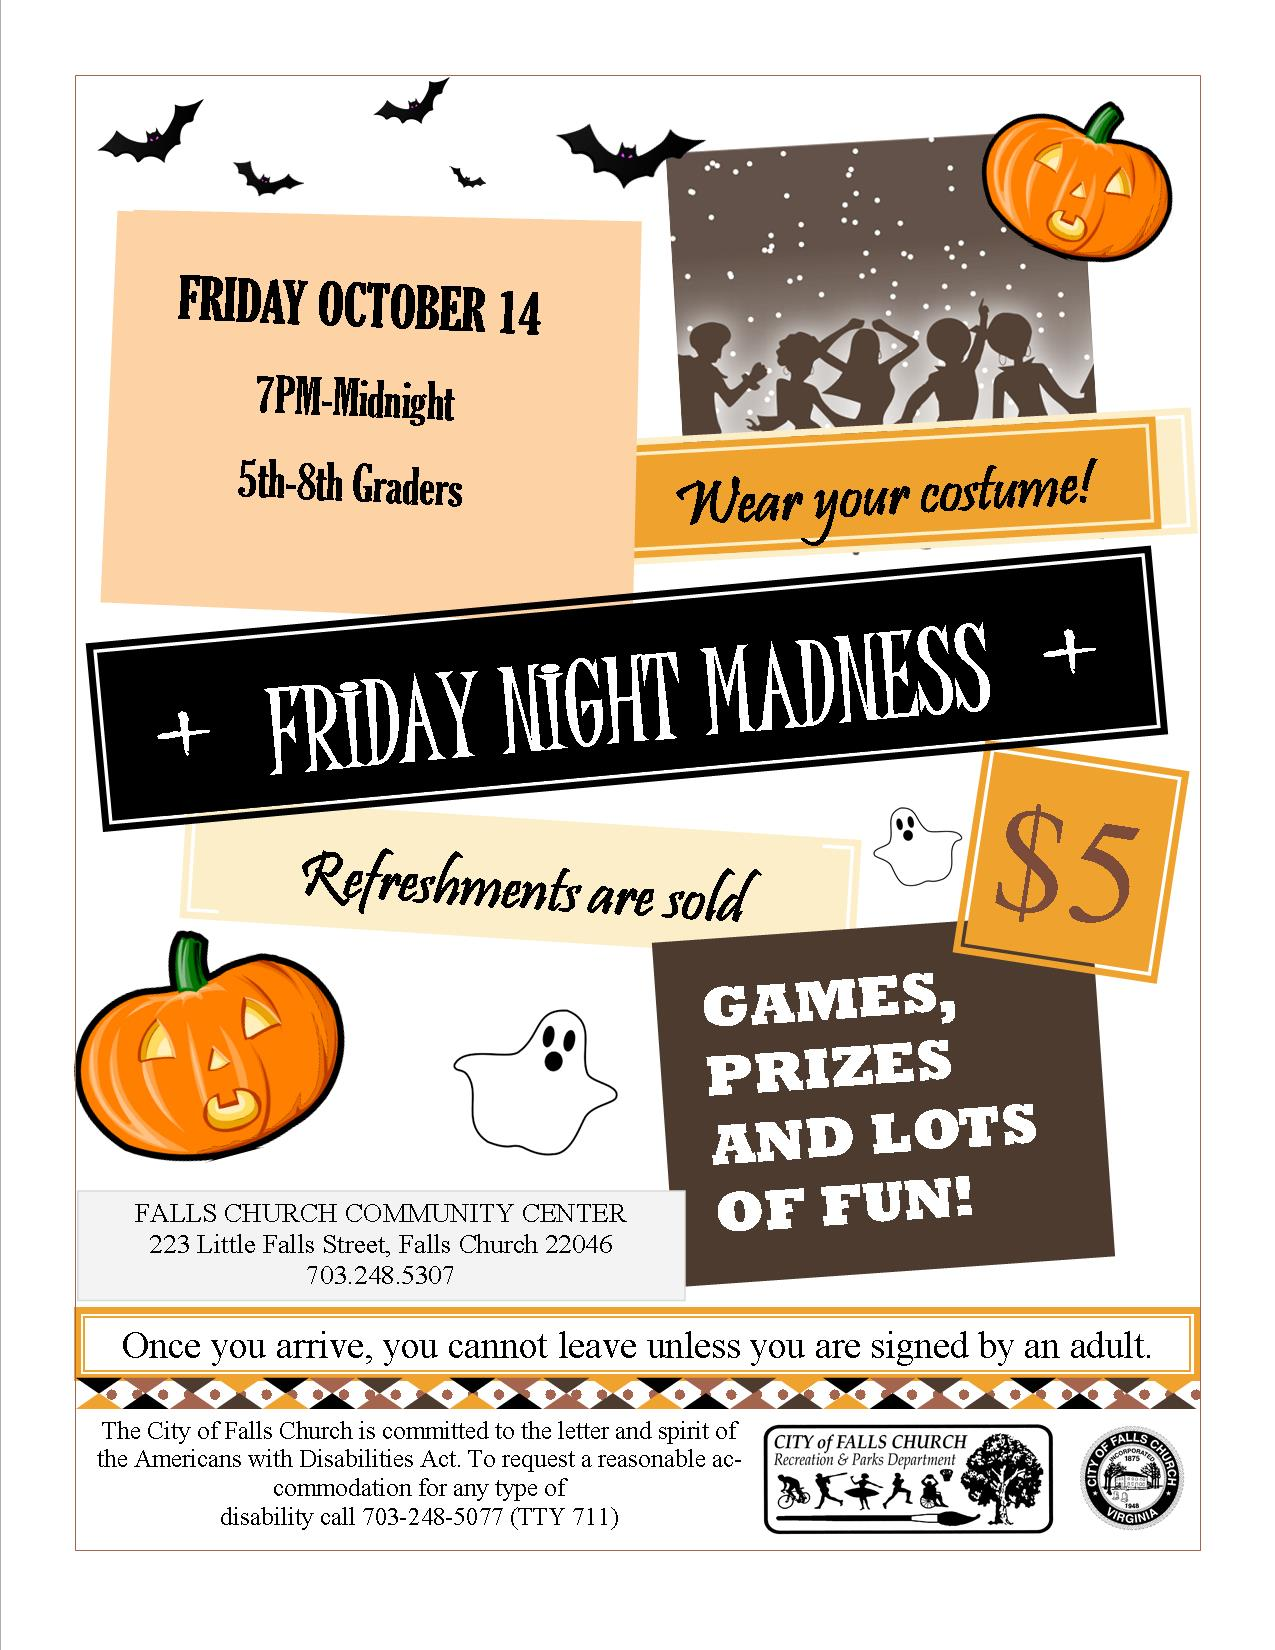 Midnight Madness Flyer Image